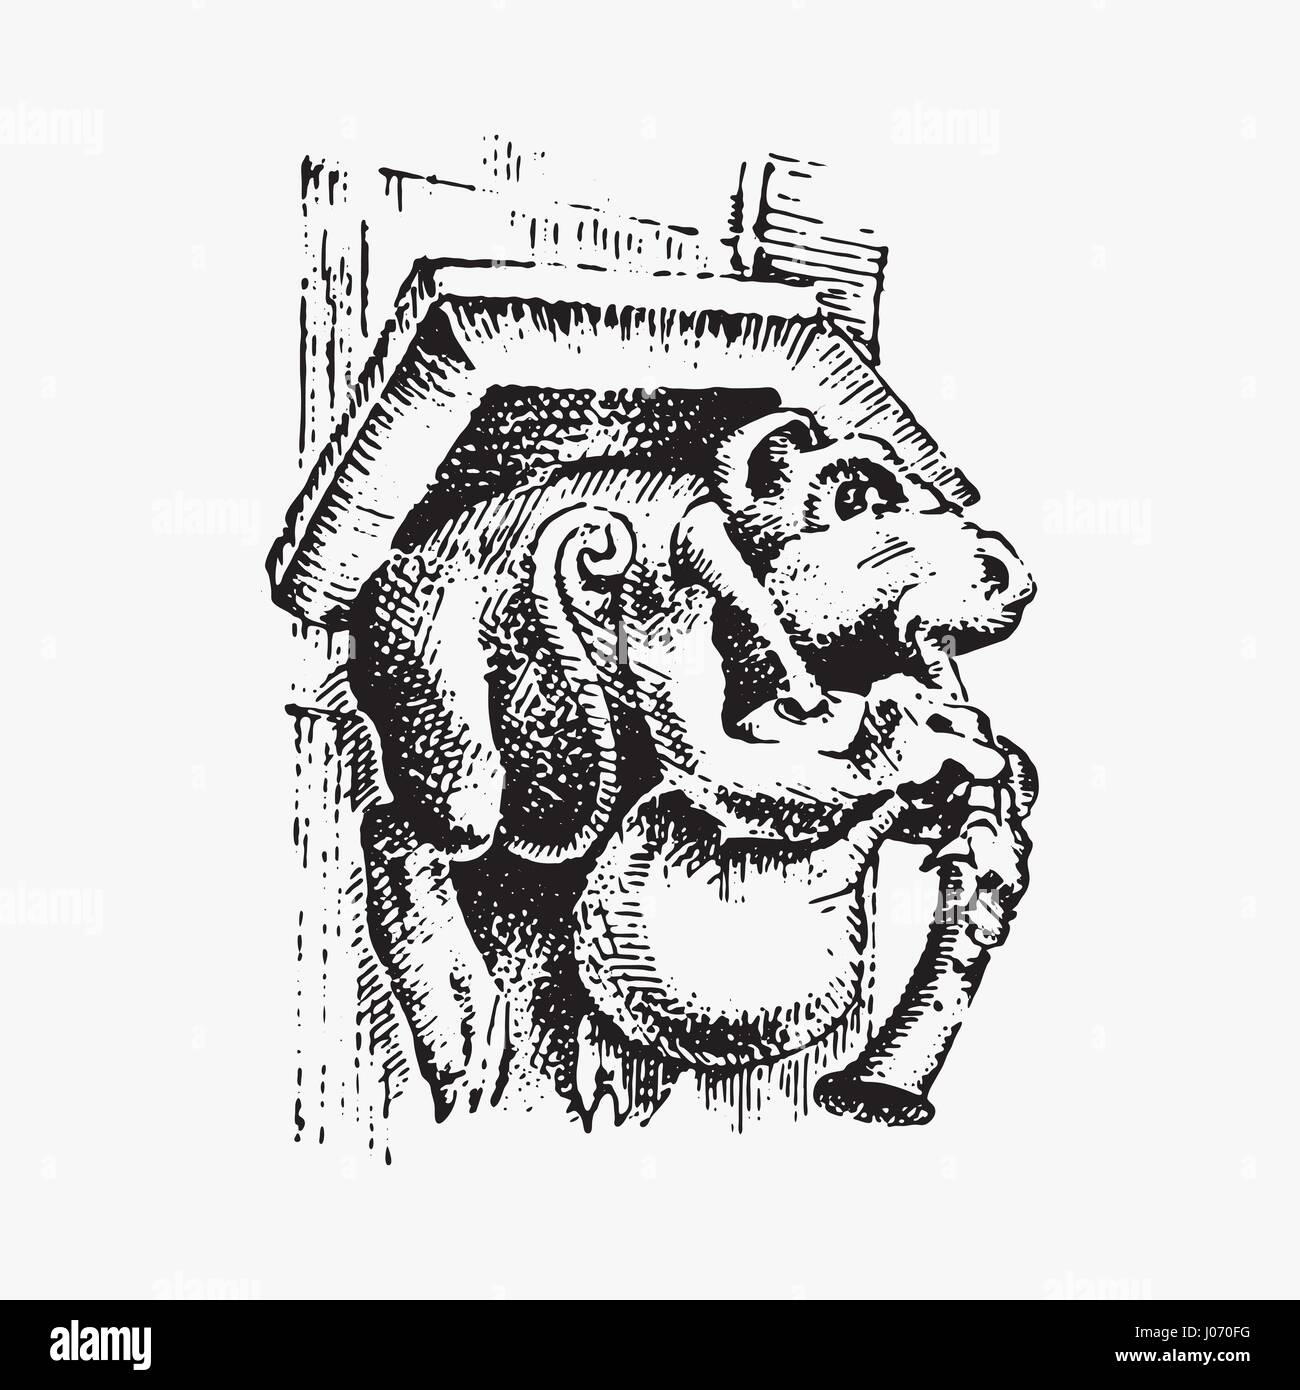 Gargoyle Chimera of Notre-Dame de Paris, engraved, hand drawn vector illustration with gothic guardians include - Stock Image